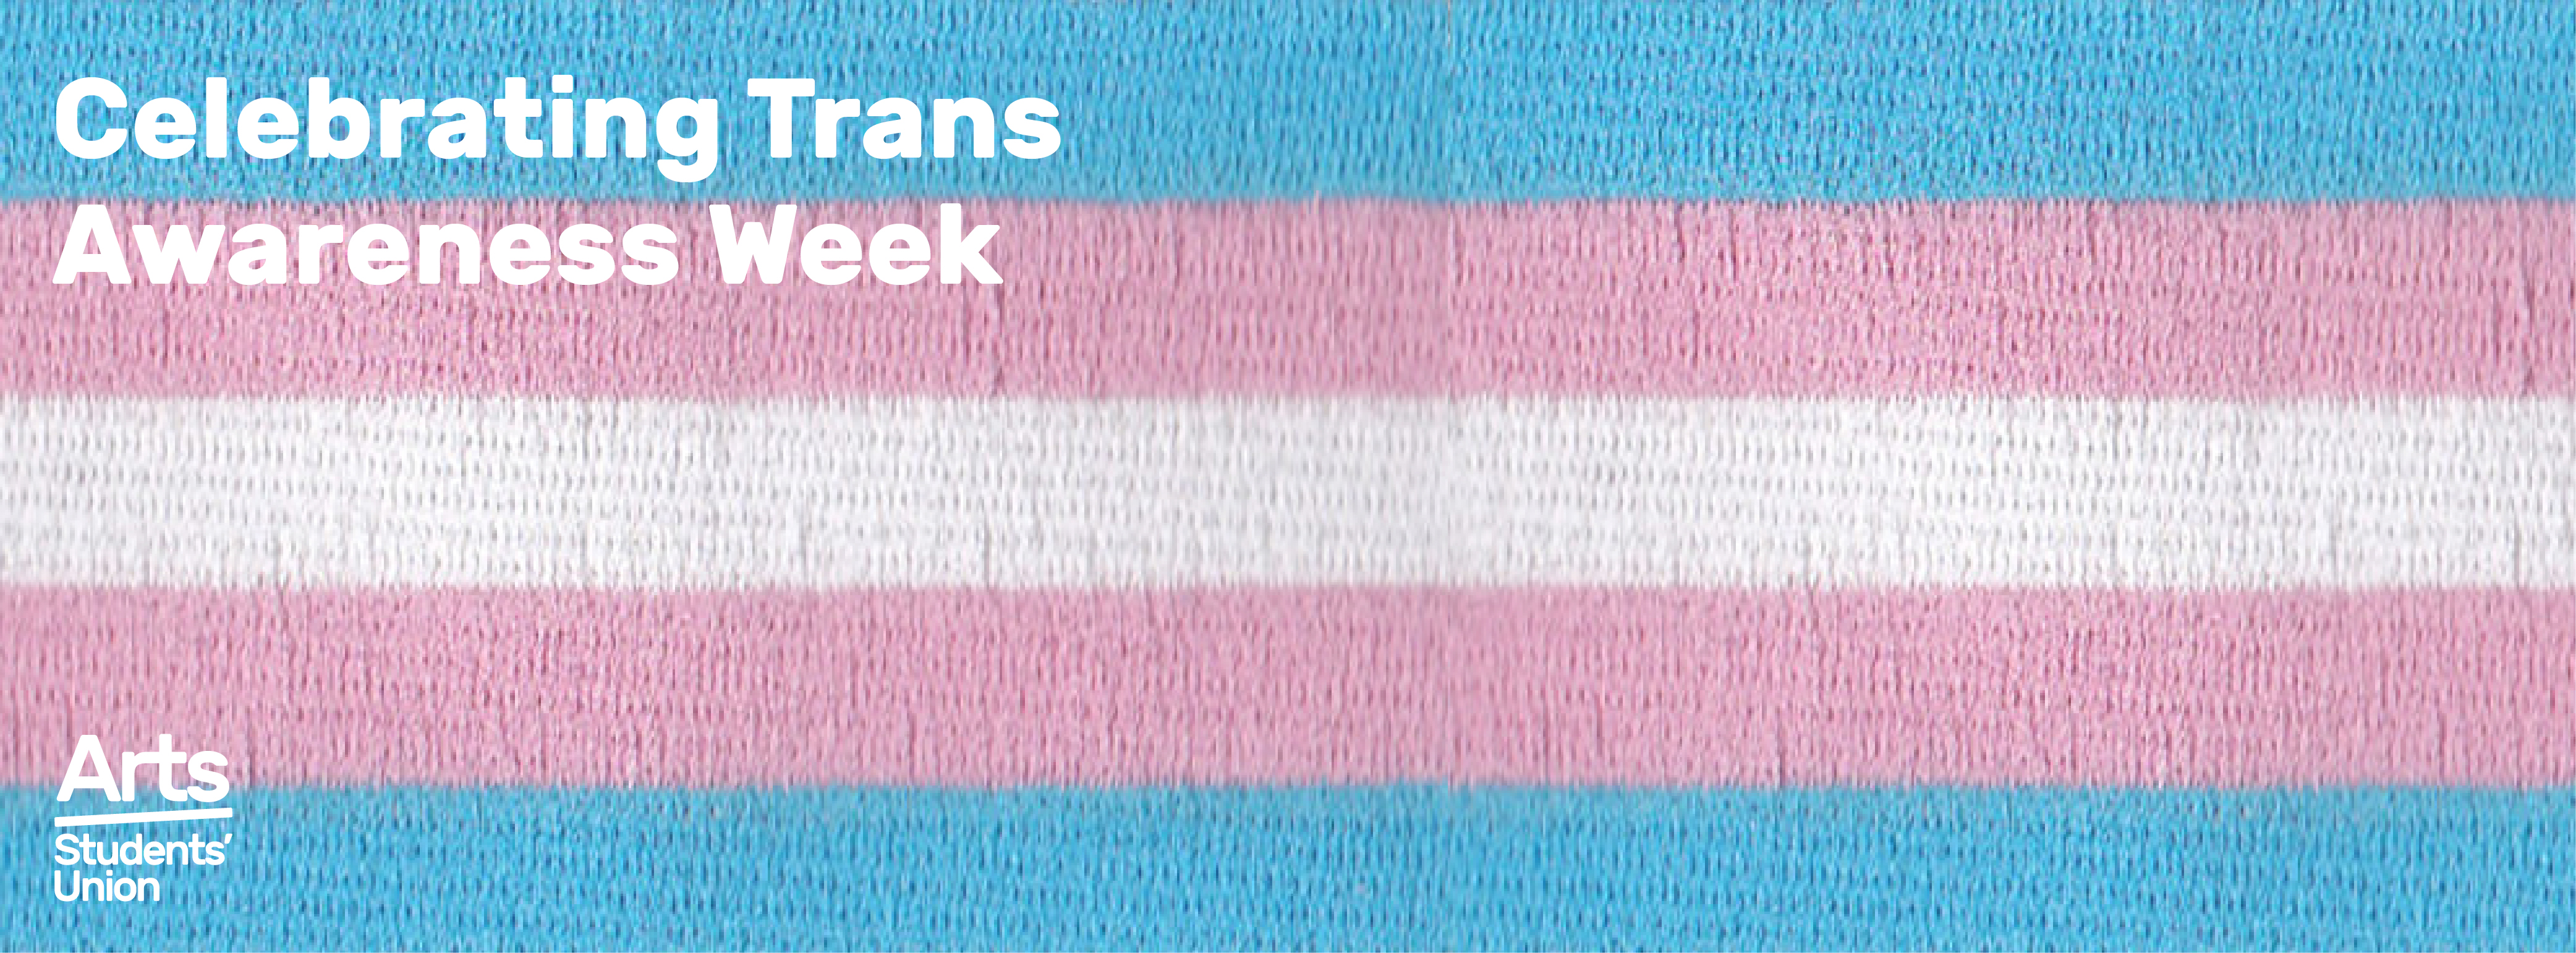 Transawareness week website banner 01